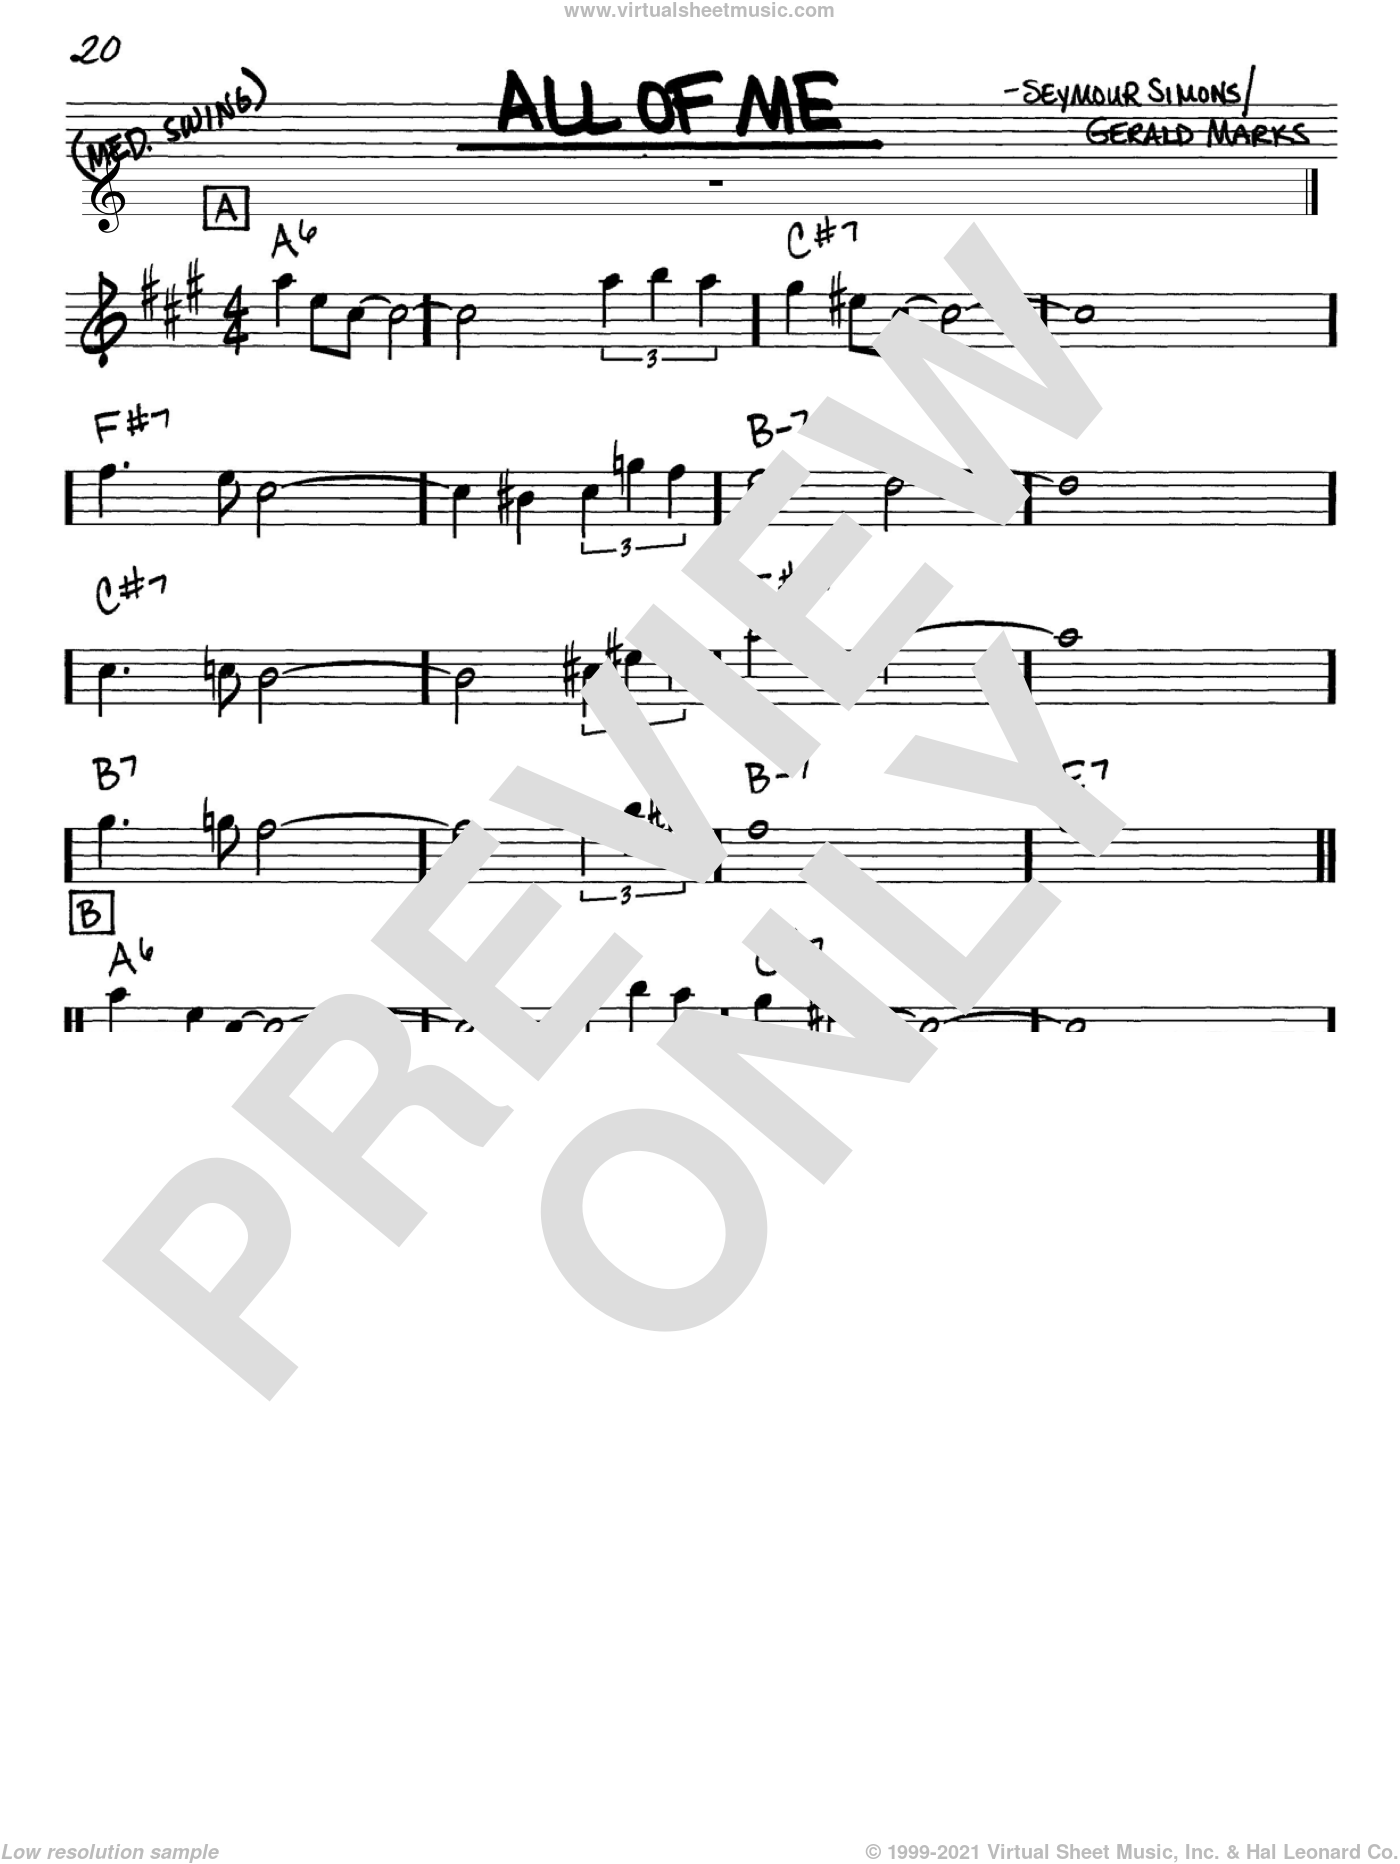 All Of Me sheet music for voice and other instruments (Eb) by Seymour Simons